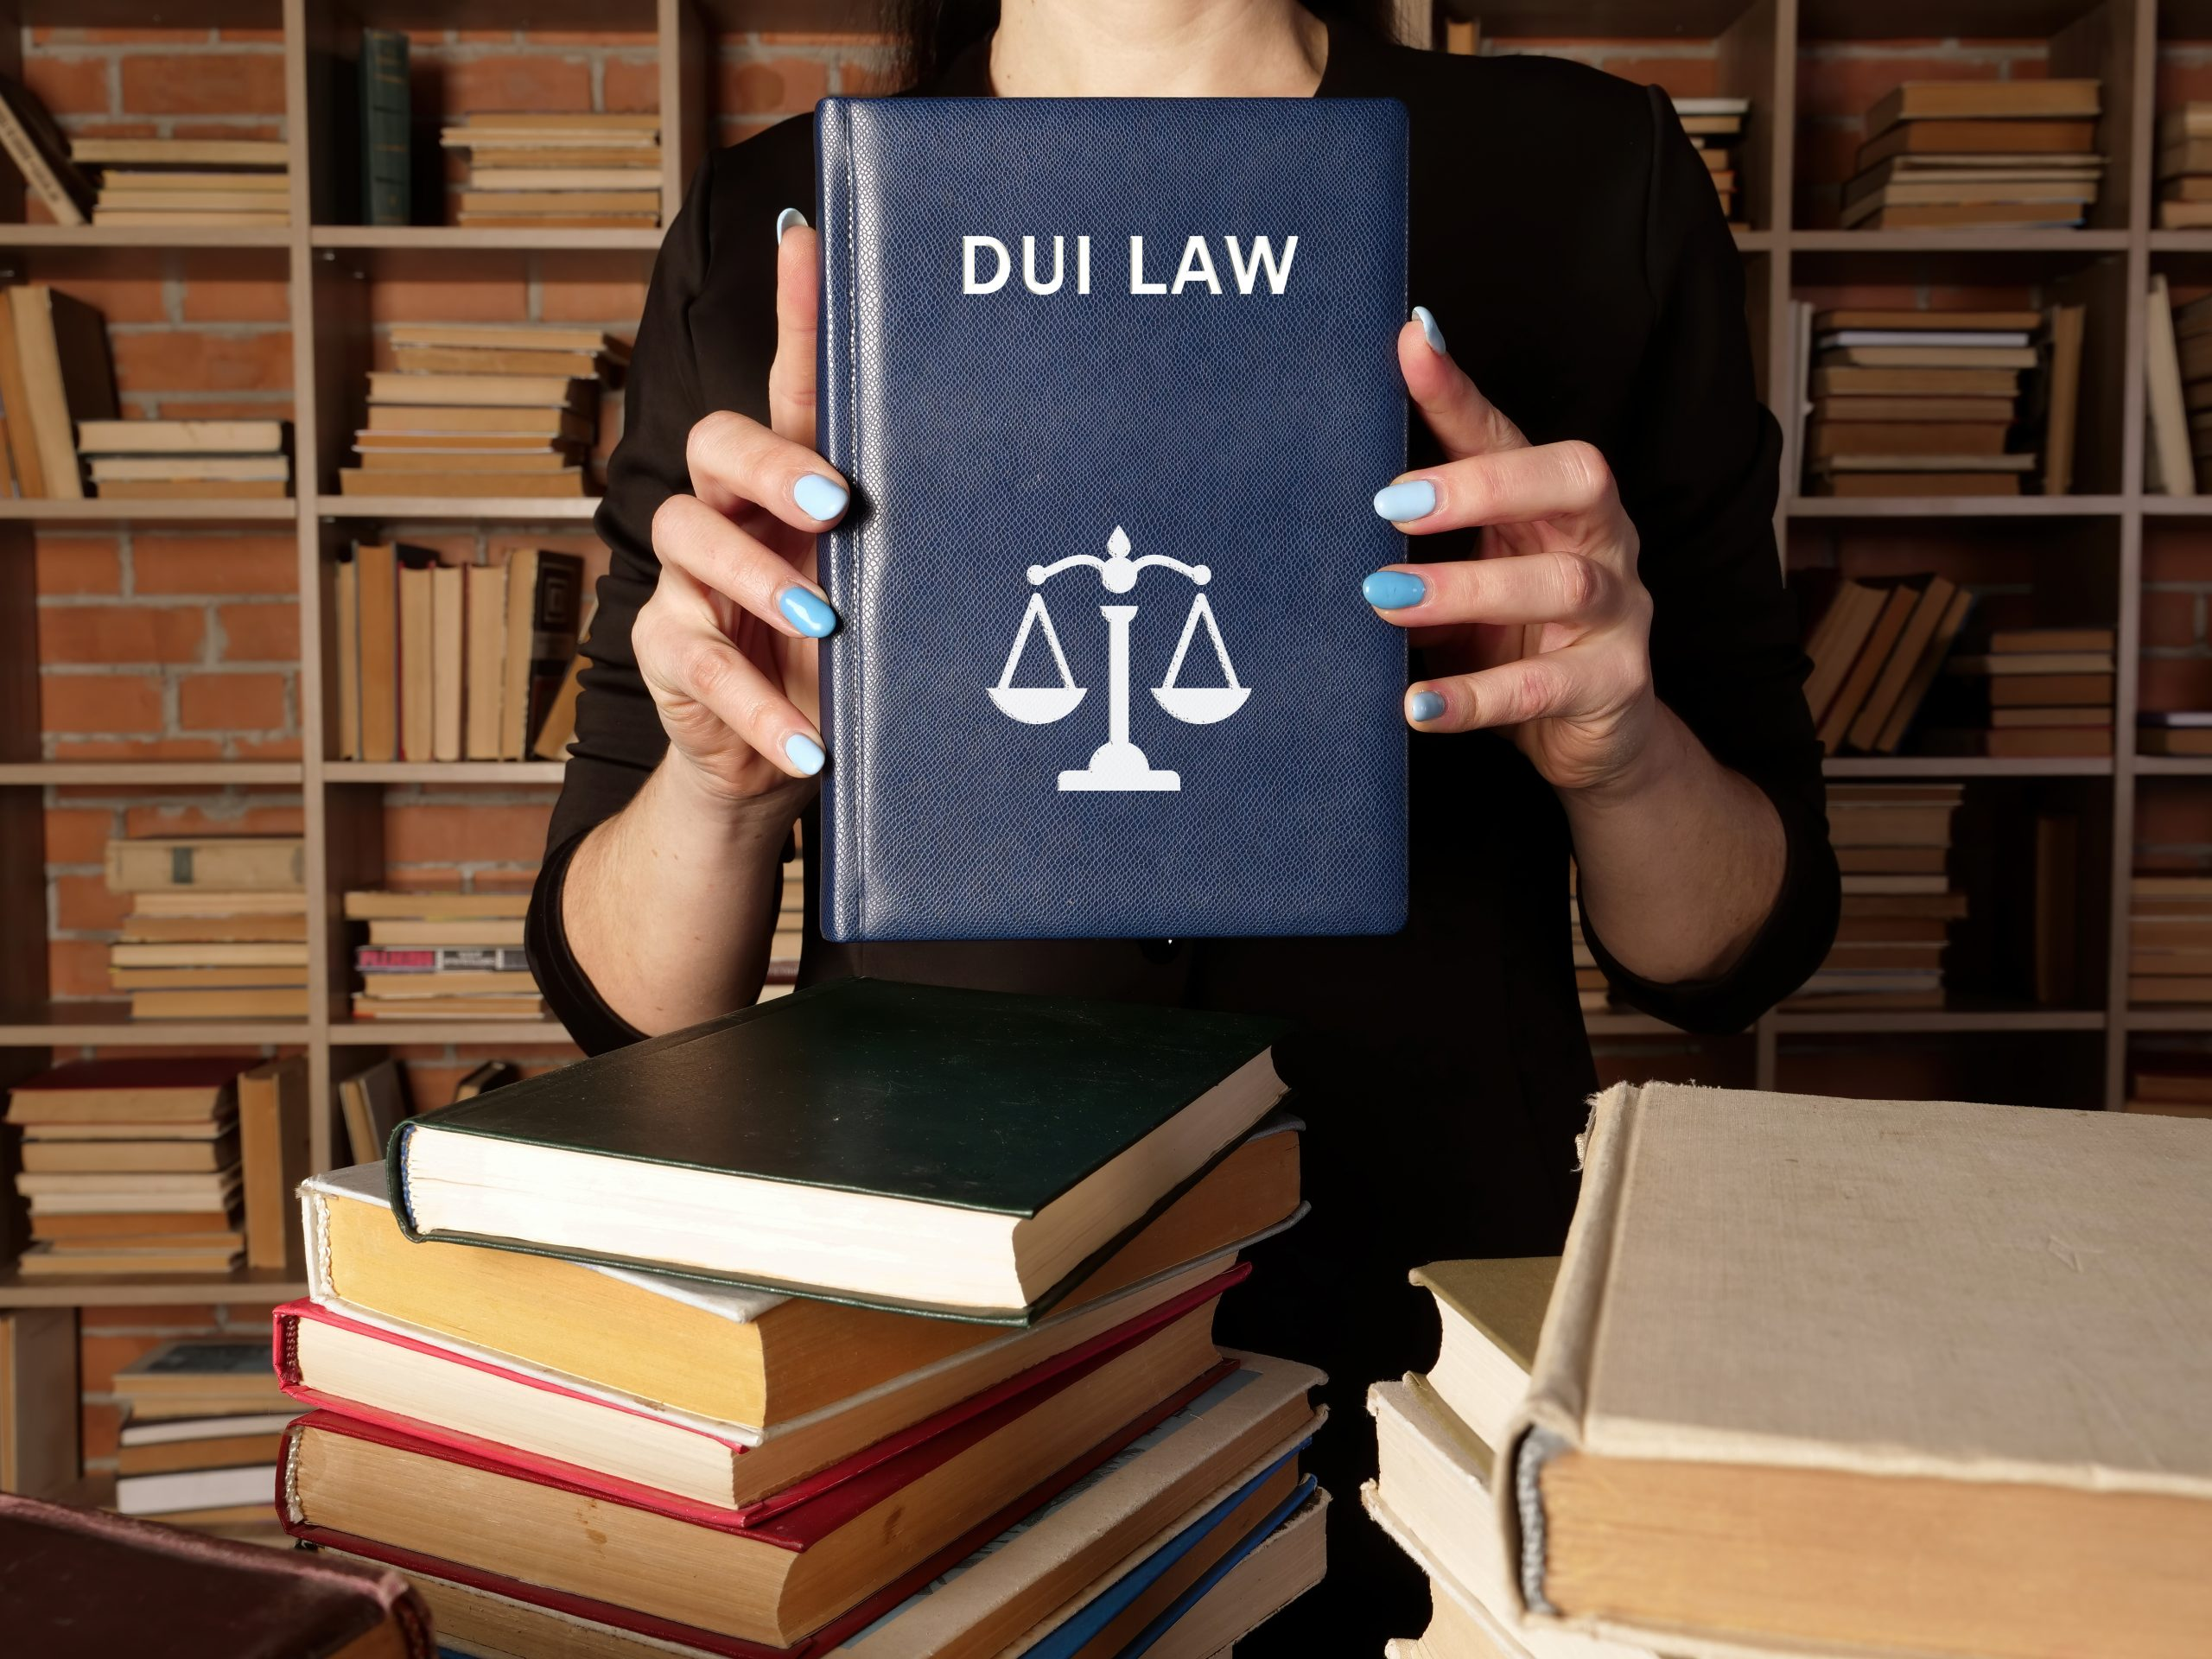 Lawyer holds DUI LAW book. Among other names, the criminal offense of drunk driving may be calleddriving under the influence